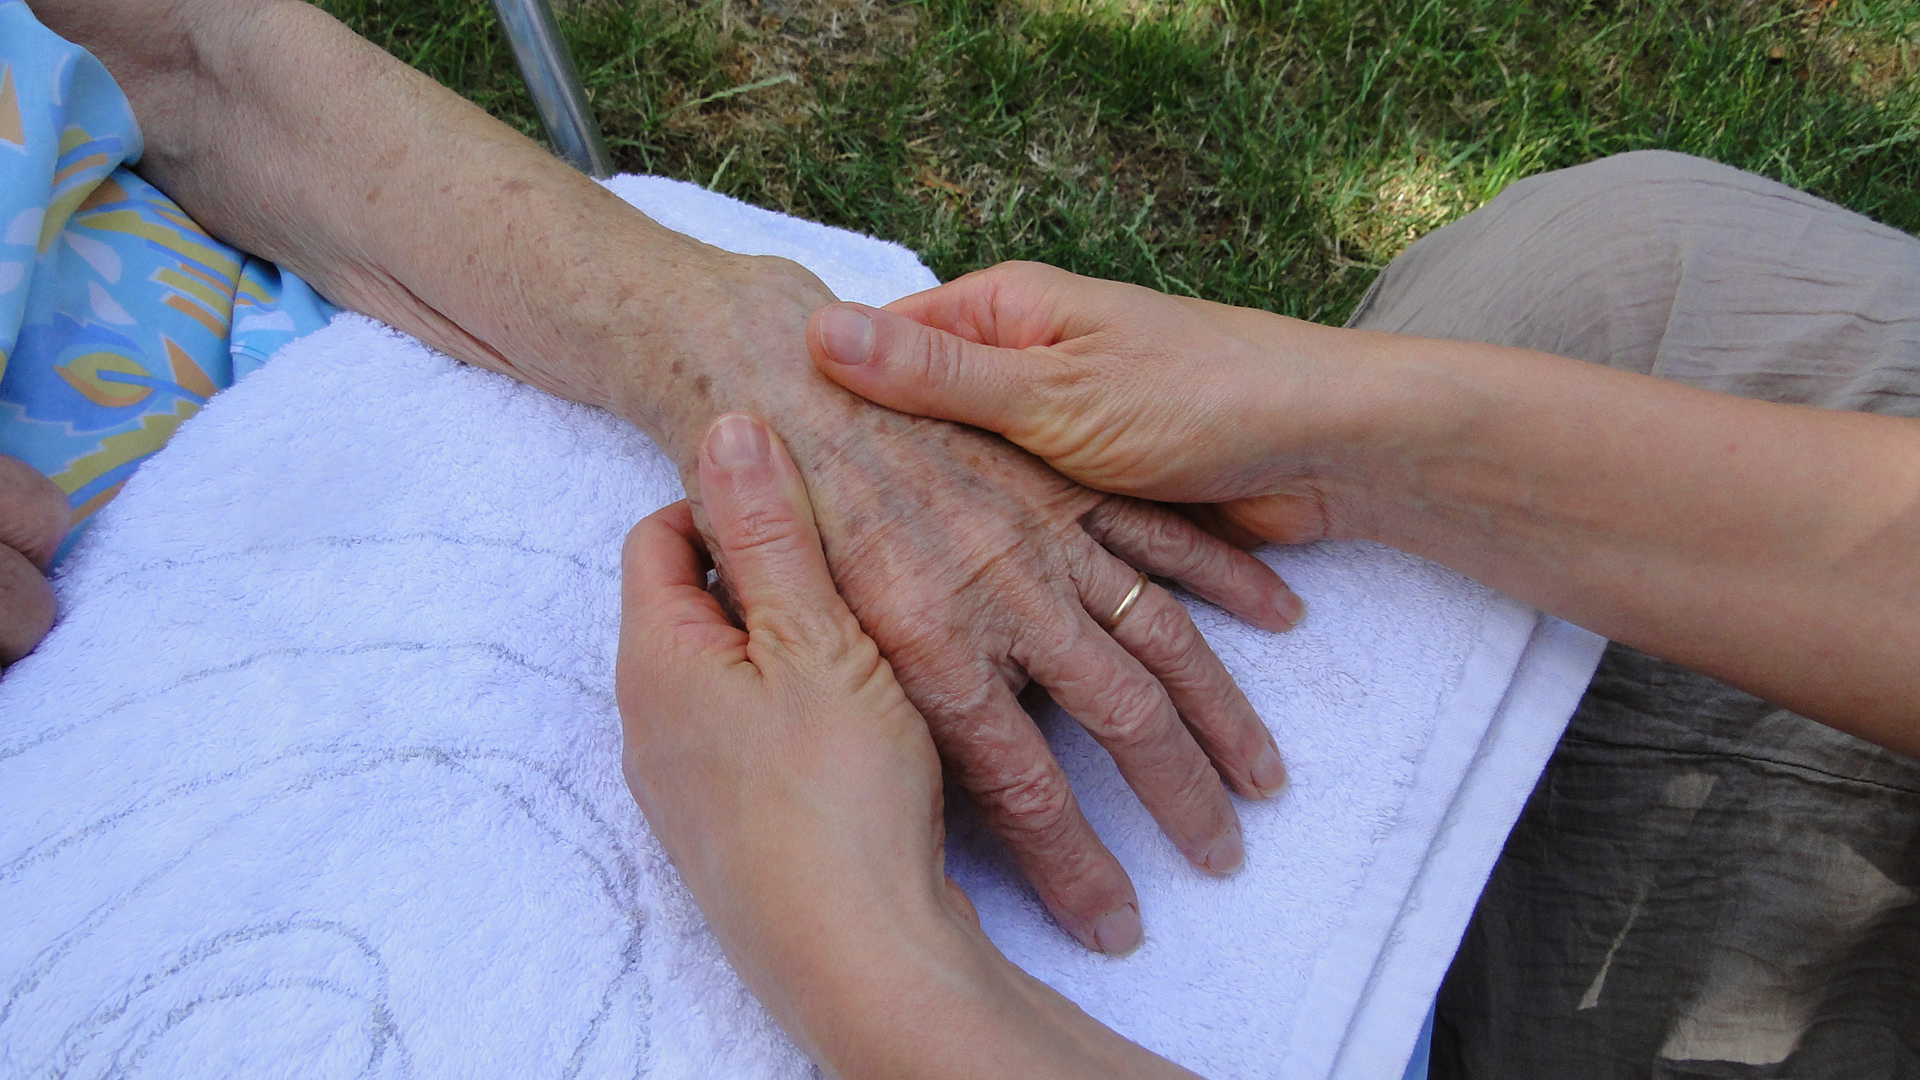 MASSAGE MAIN SENIOR AGE